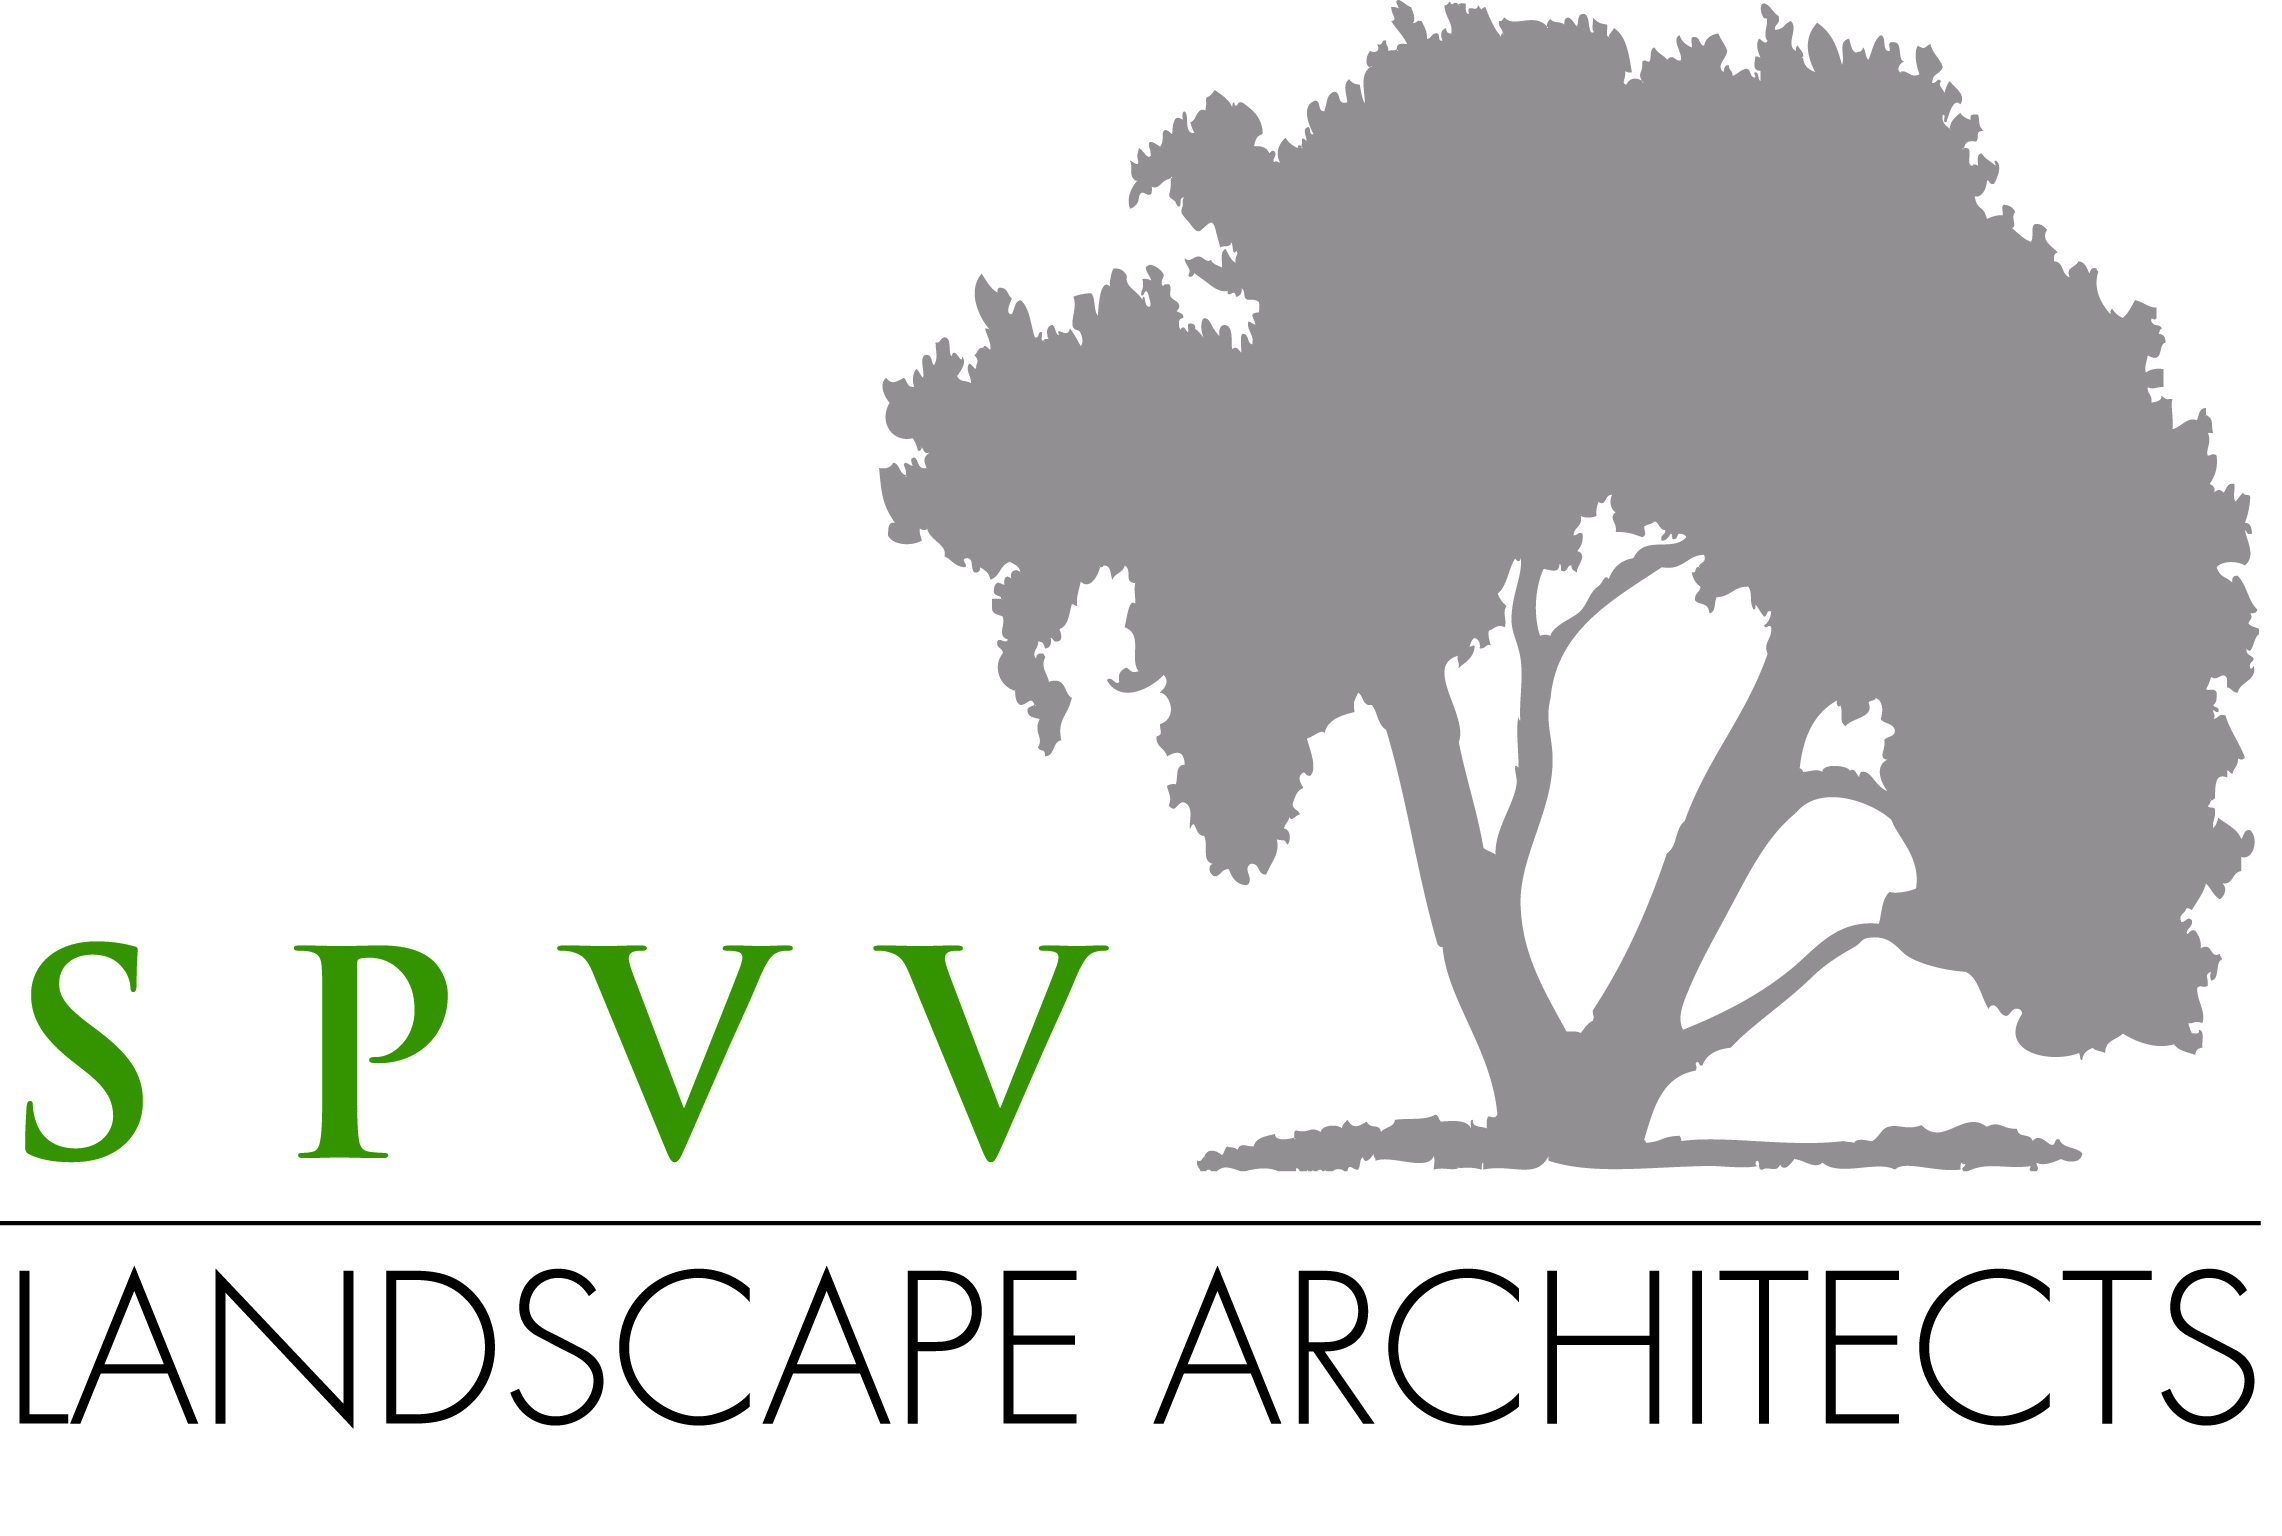 SPVV Landscape Architects